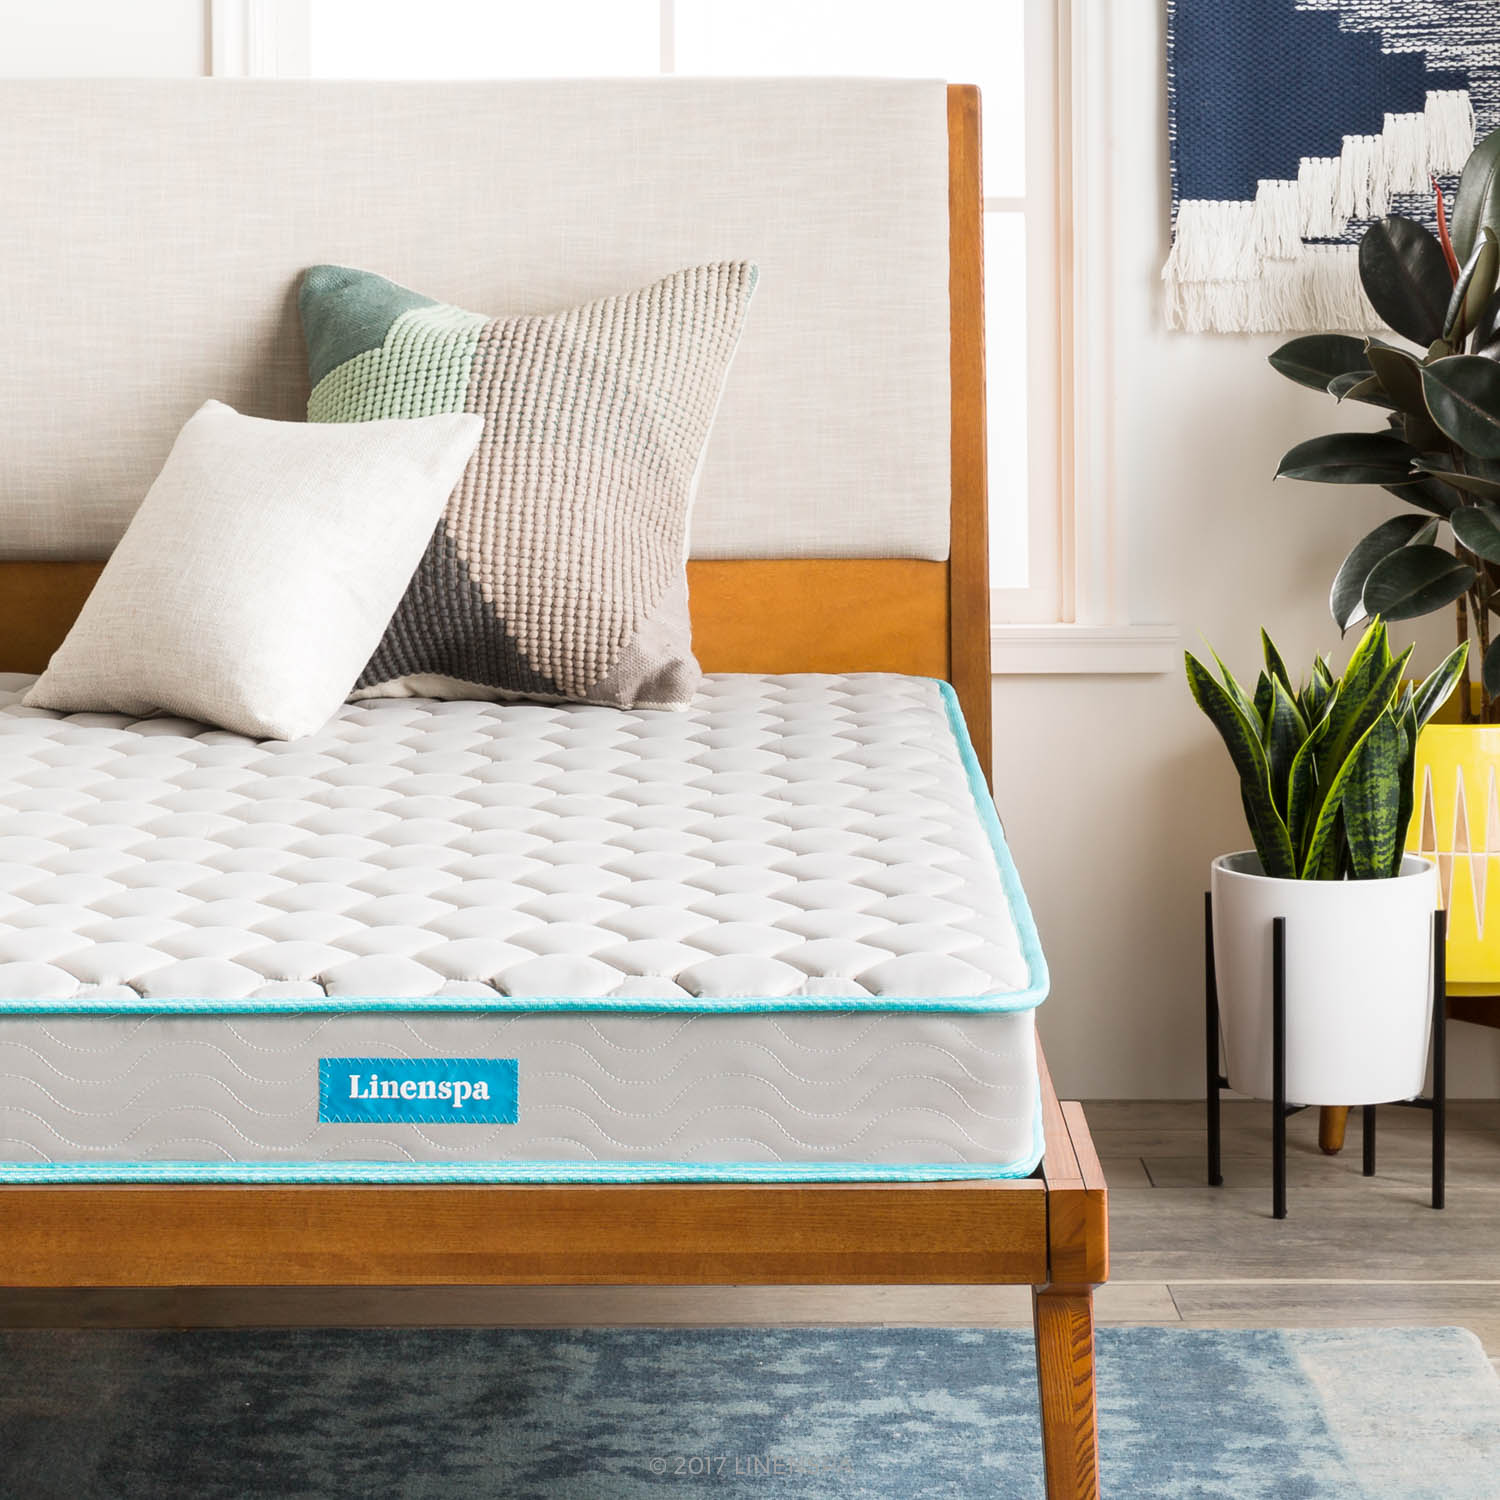 Linenspa 6 Inch Innerspring Mattress-in-a-Box, Multiple Sizes